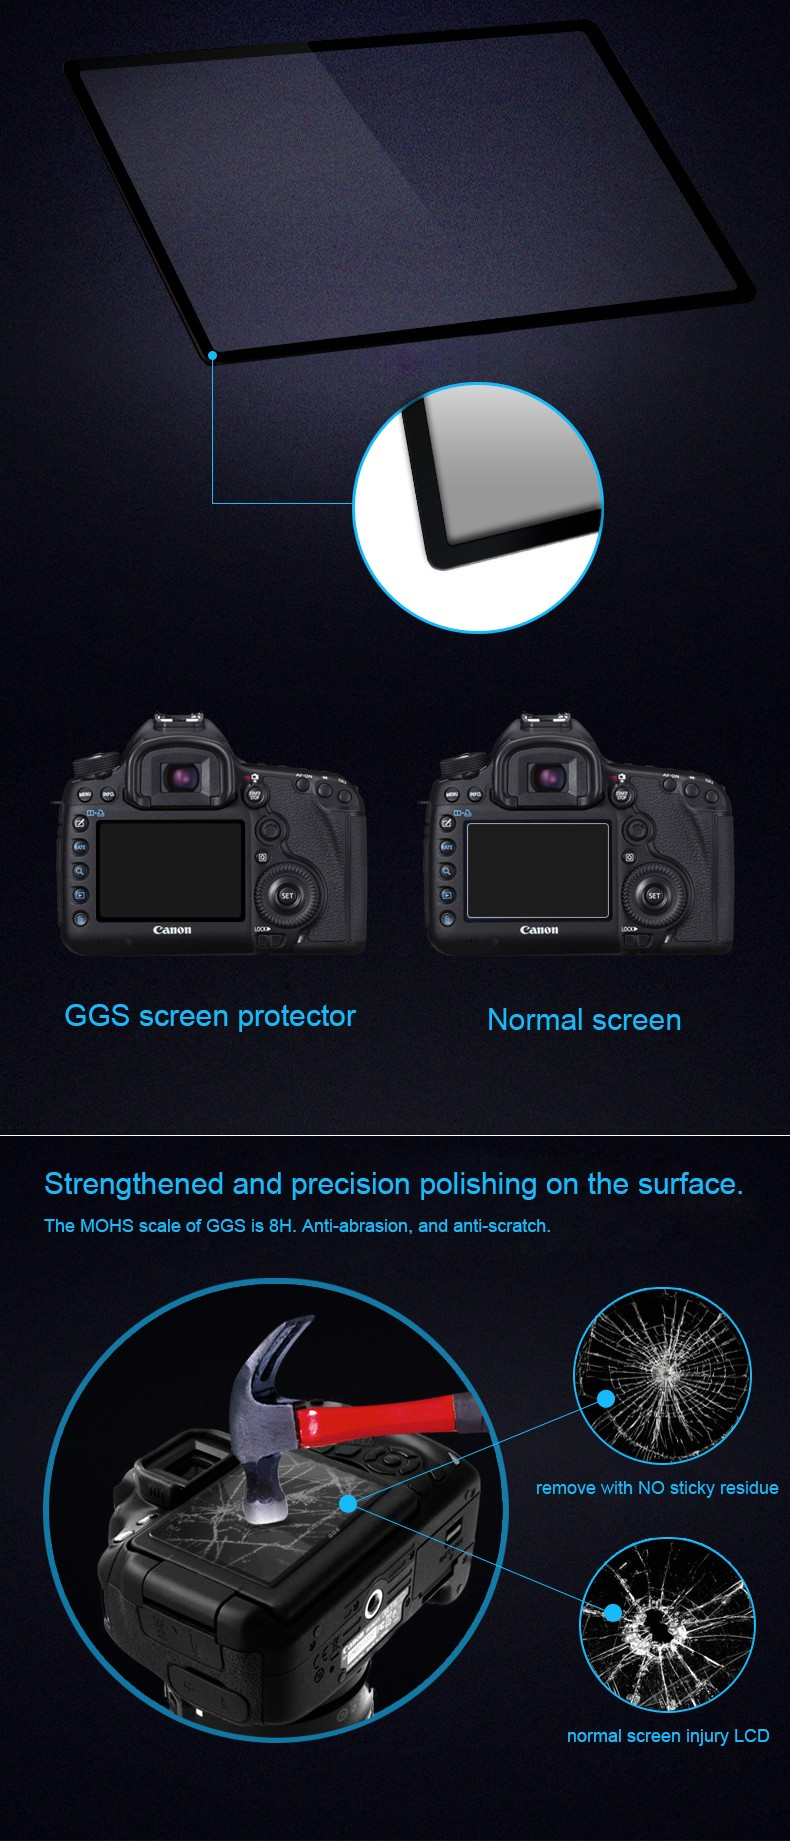 NEW GGS IV 0.3mm Japanese Optical Glass LCD Screen Protector Cover for Canon 6D Camera DSLR